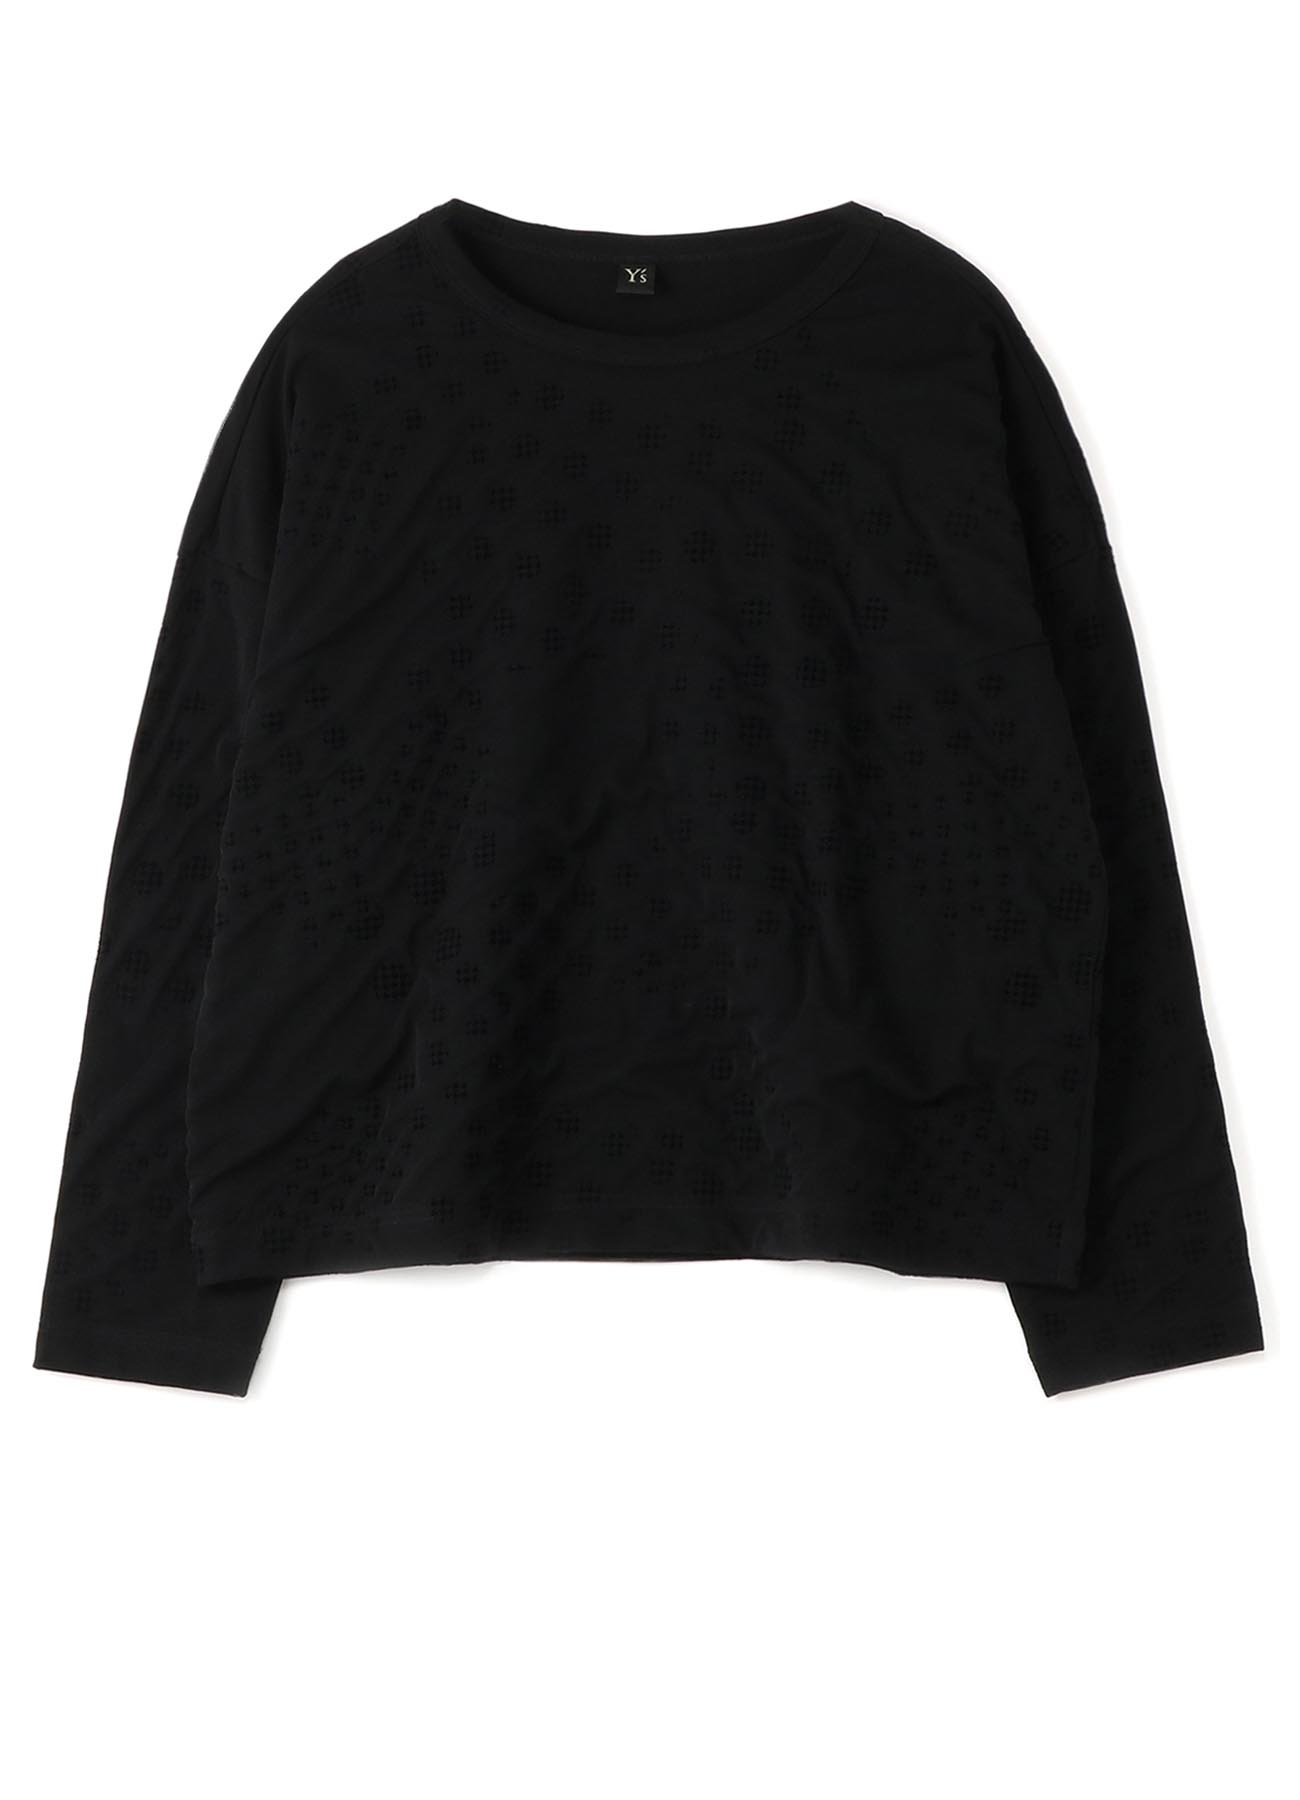 POLYESTER TULLE x COTTON HOUNDSTOOTH FLOCKY LONG SLEEVE T-SHIRT